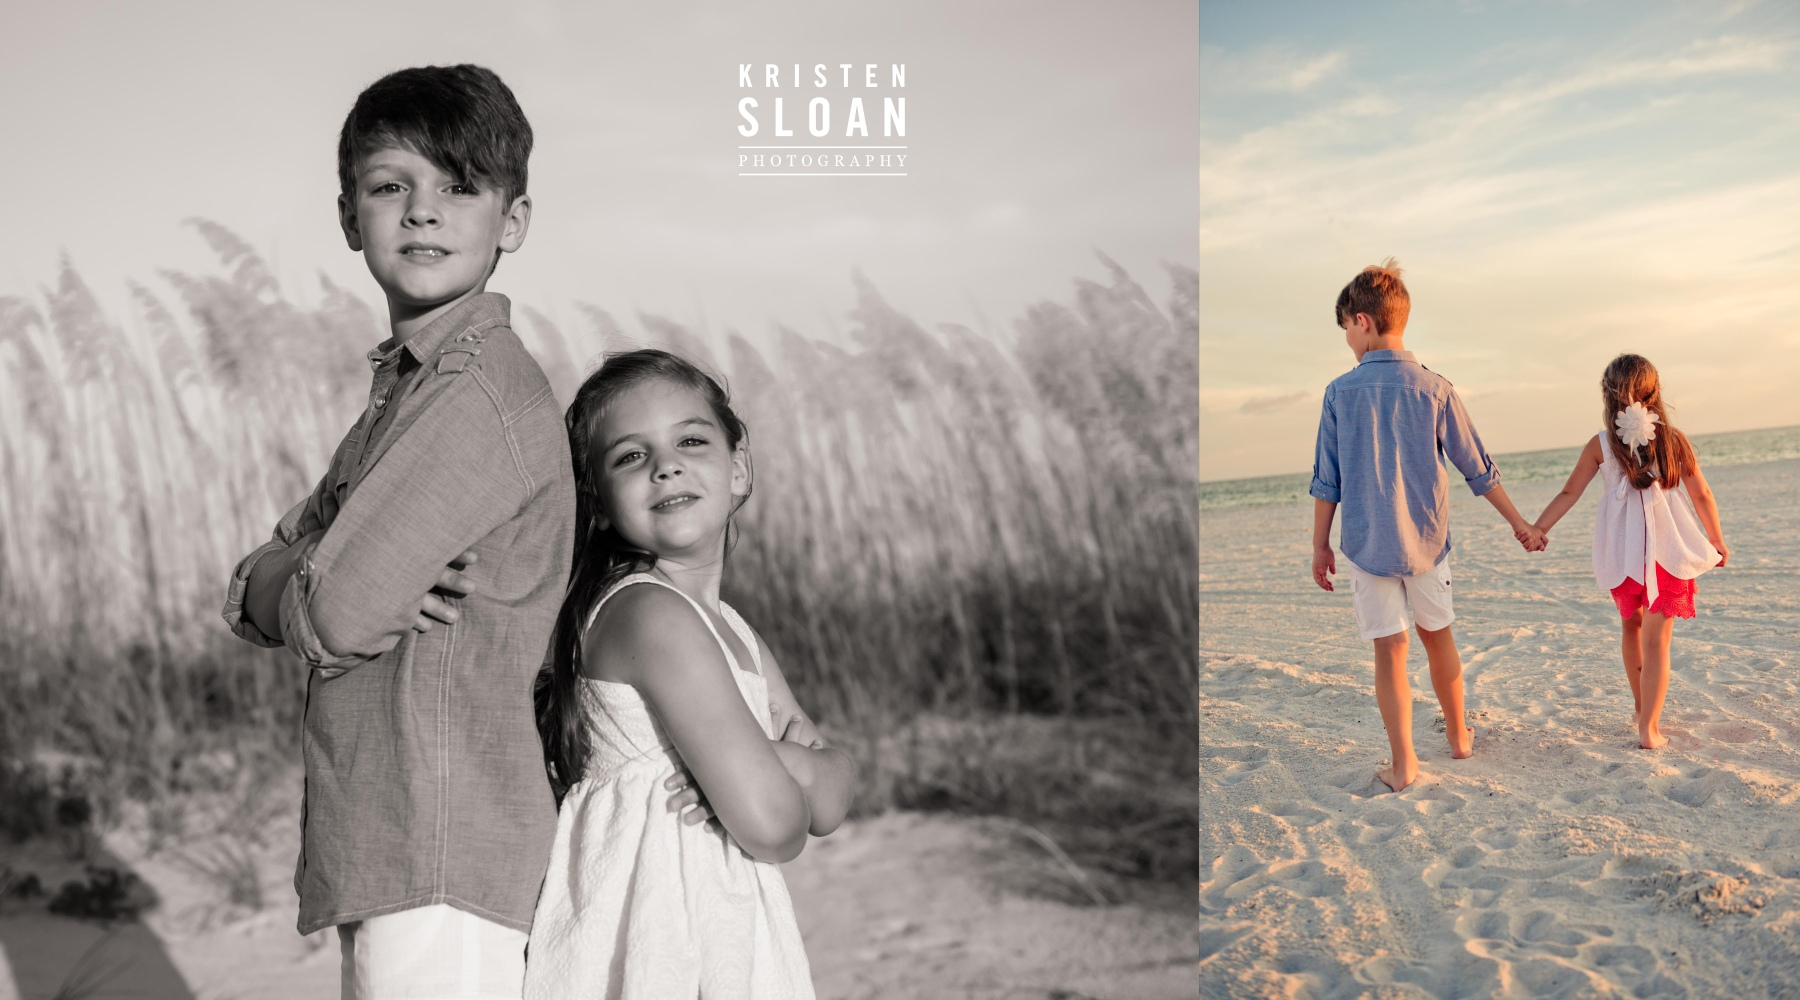 Treasure Island Photographer Kristen Sloan